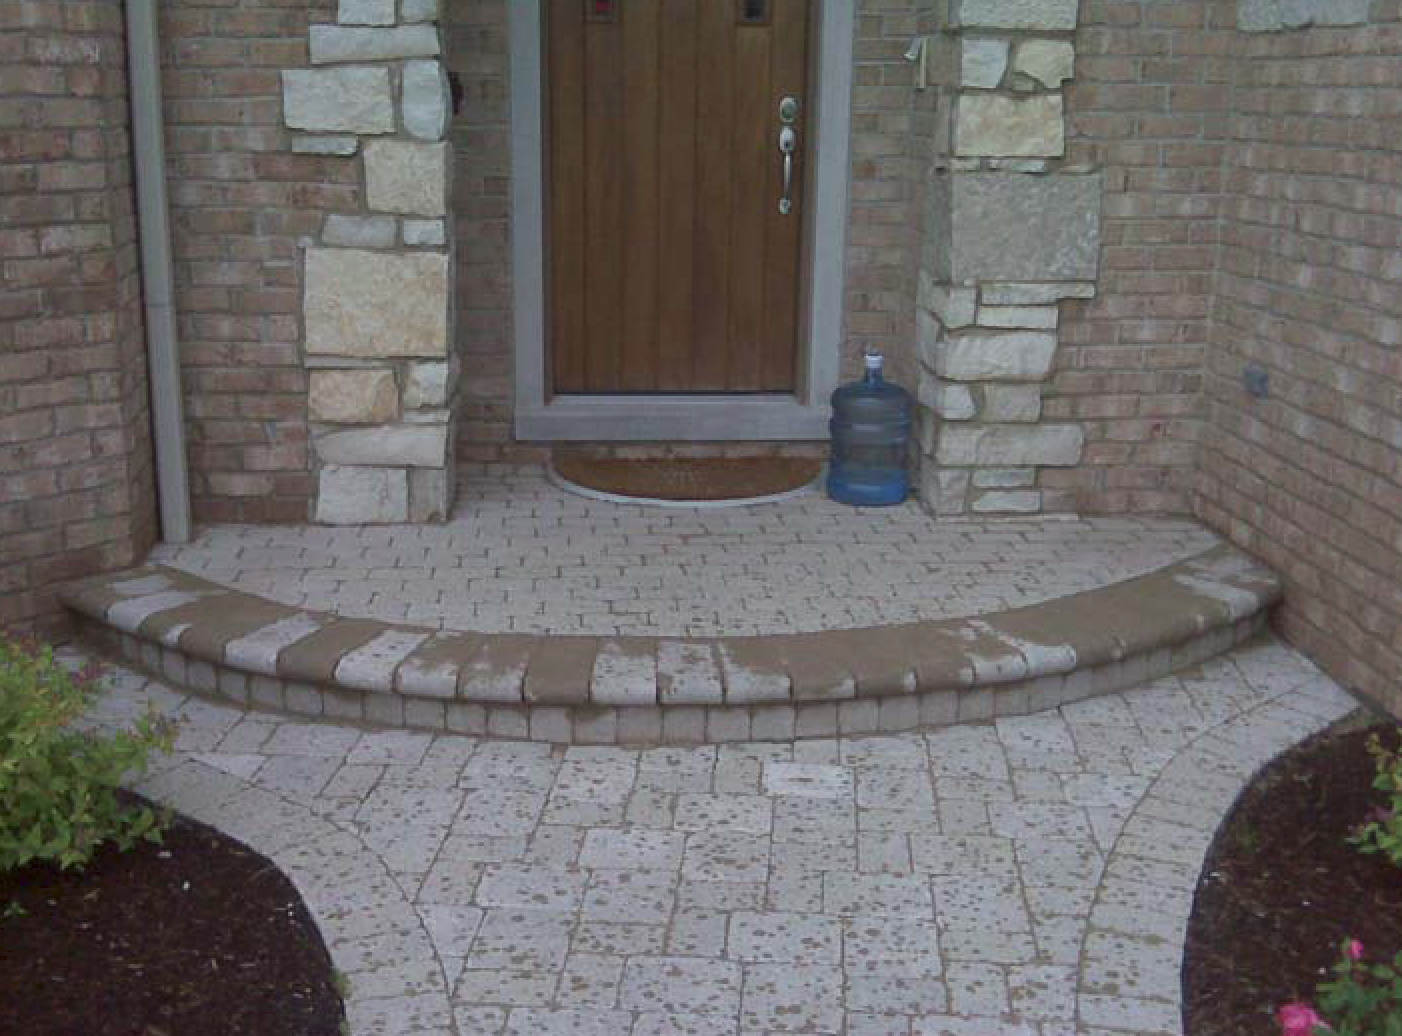 Unilock contractor patio pavers, landscape design in Nortbrook, Glenview, Buffalo Grove, IL